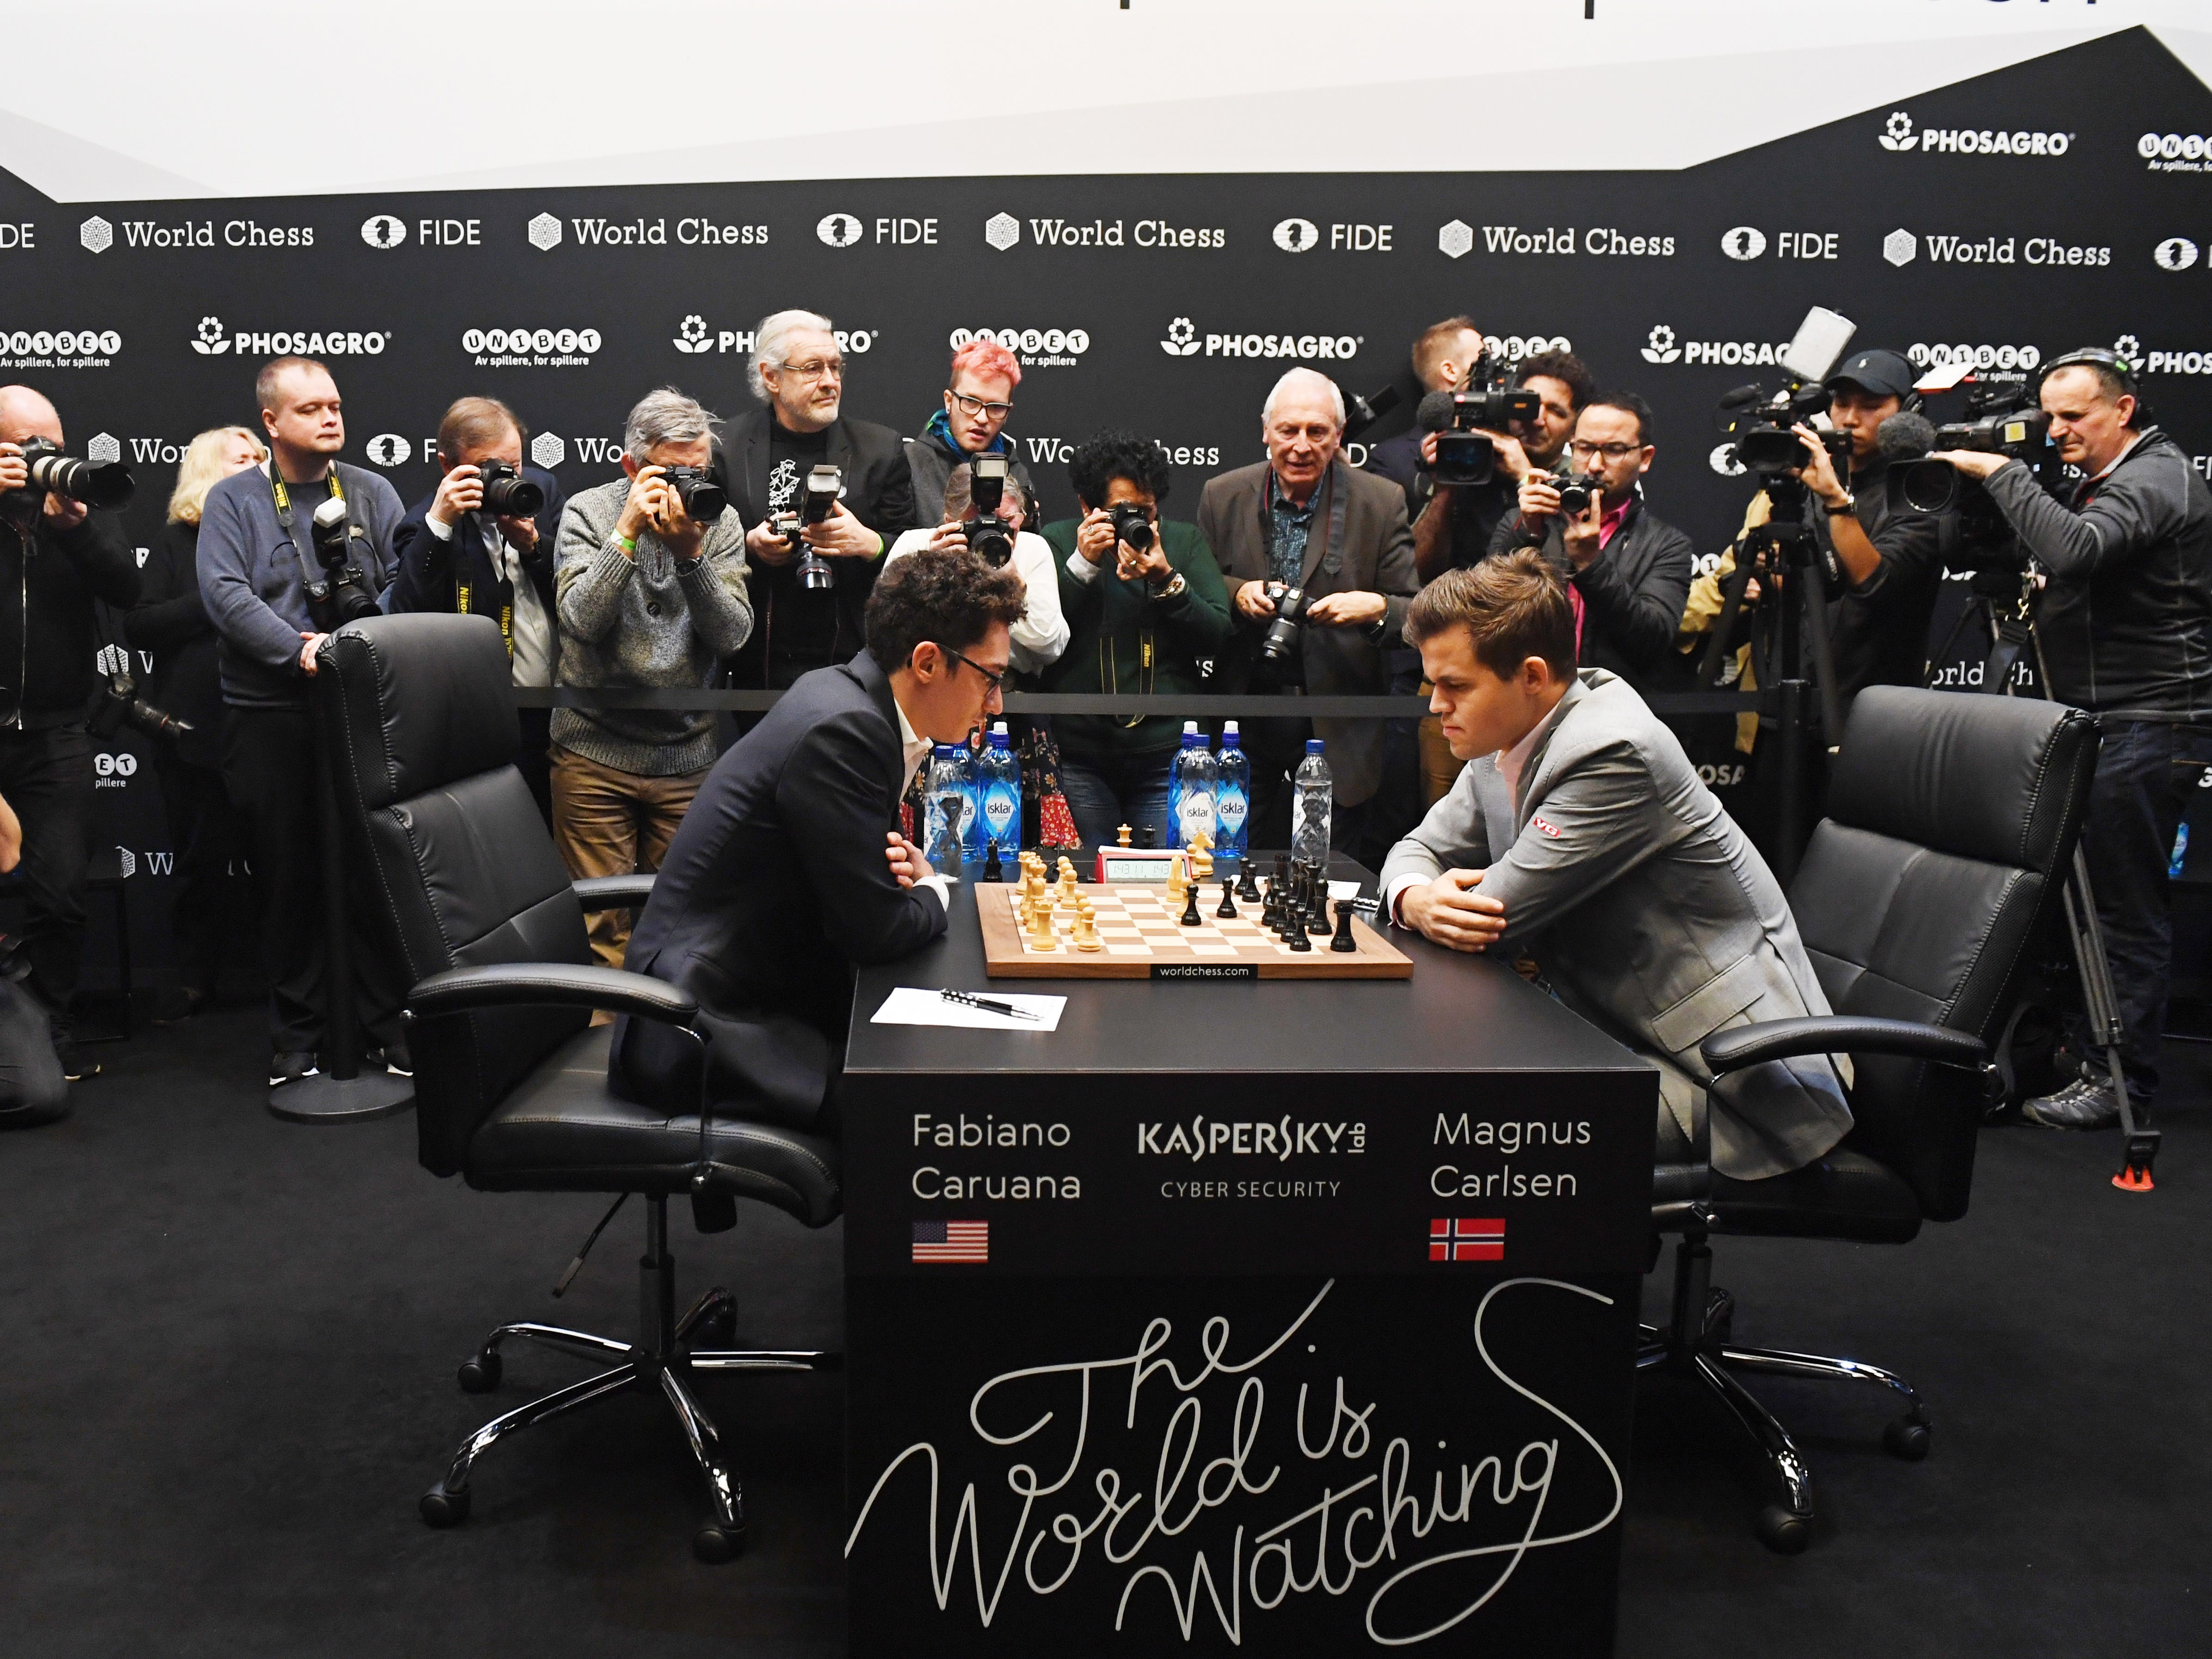 Reigning chess world champion Magnus Carlsen plays against American challenger Fabiano Caruana during round 12 of the World Chess Championship, Nov. 26, 2018.